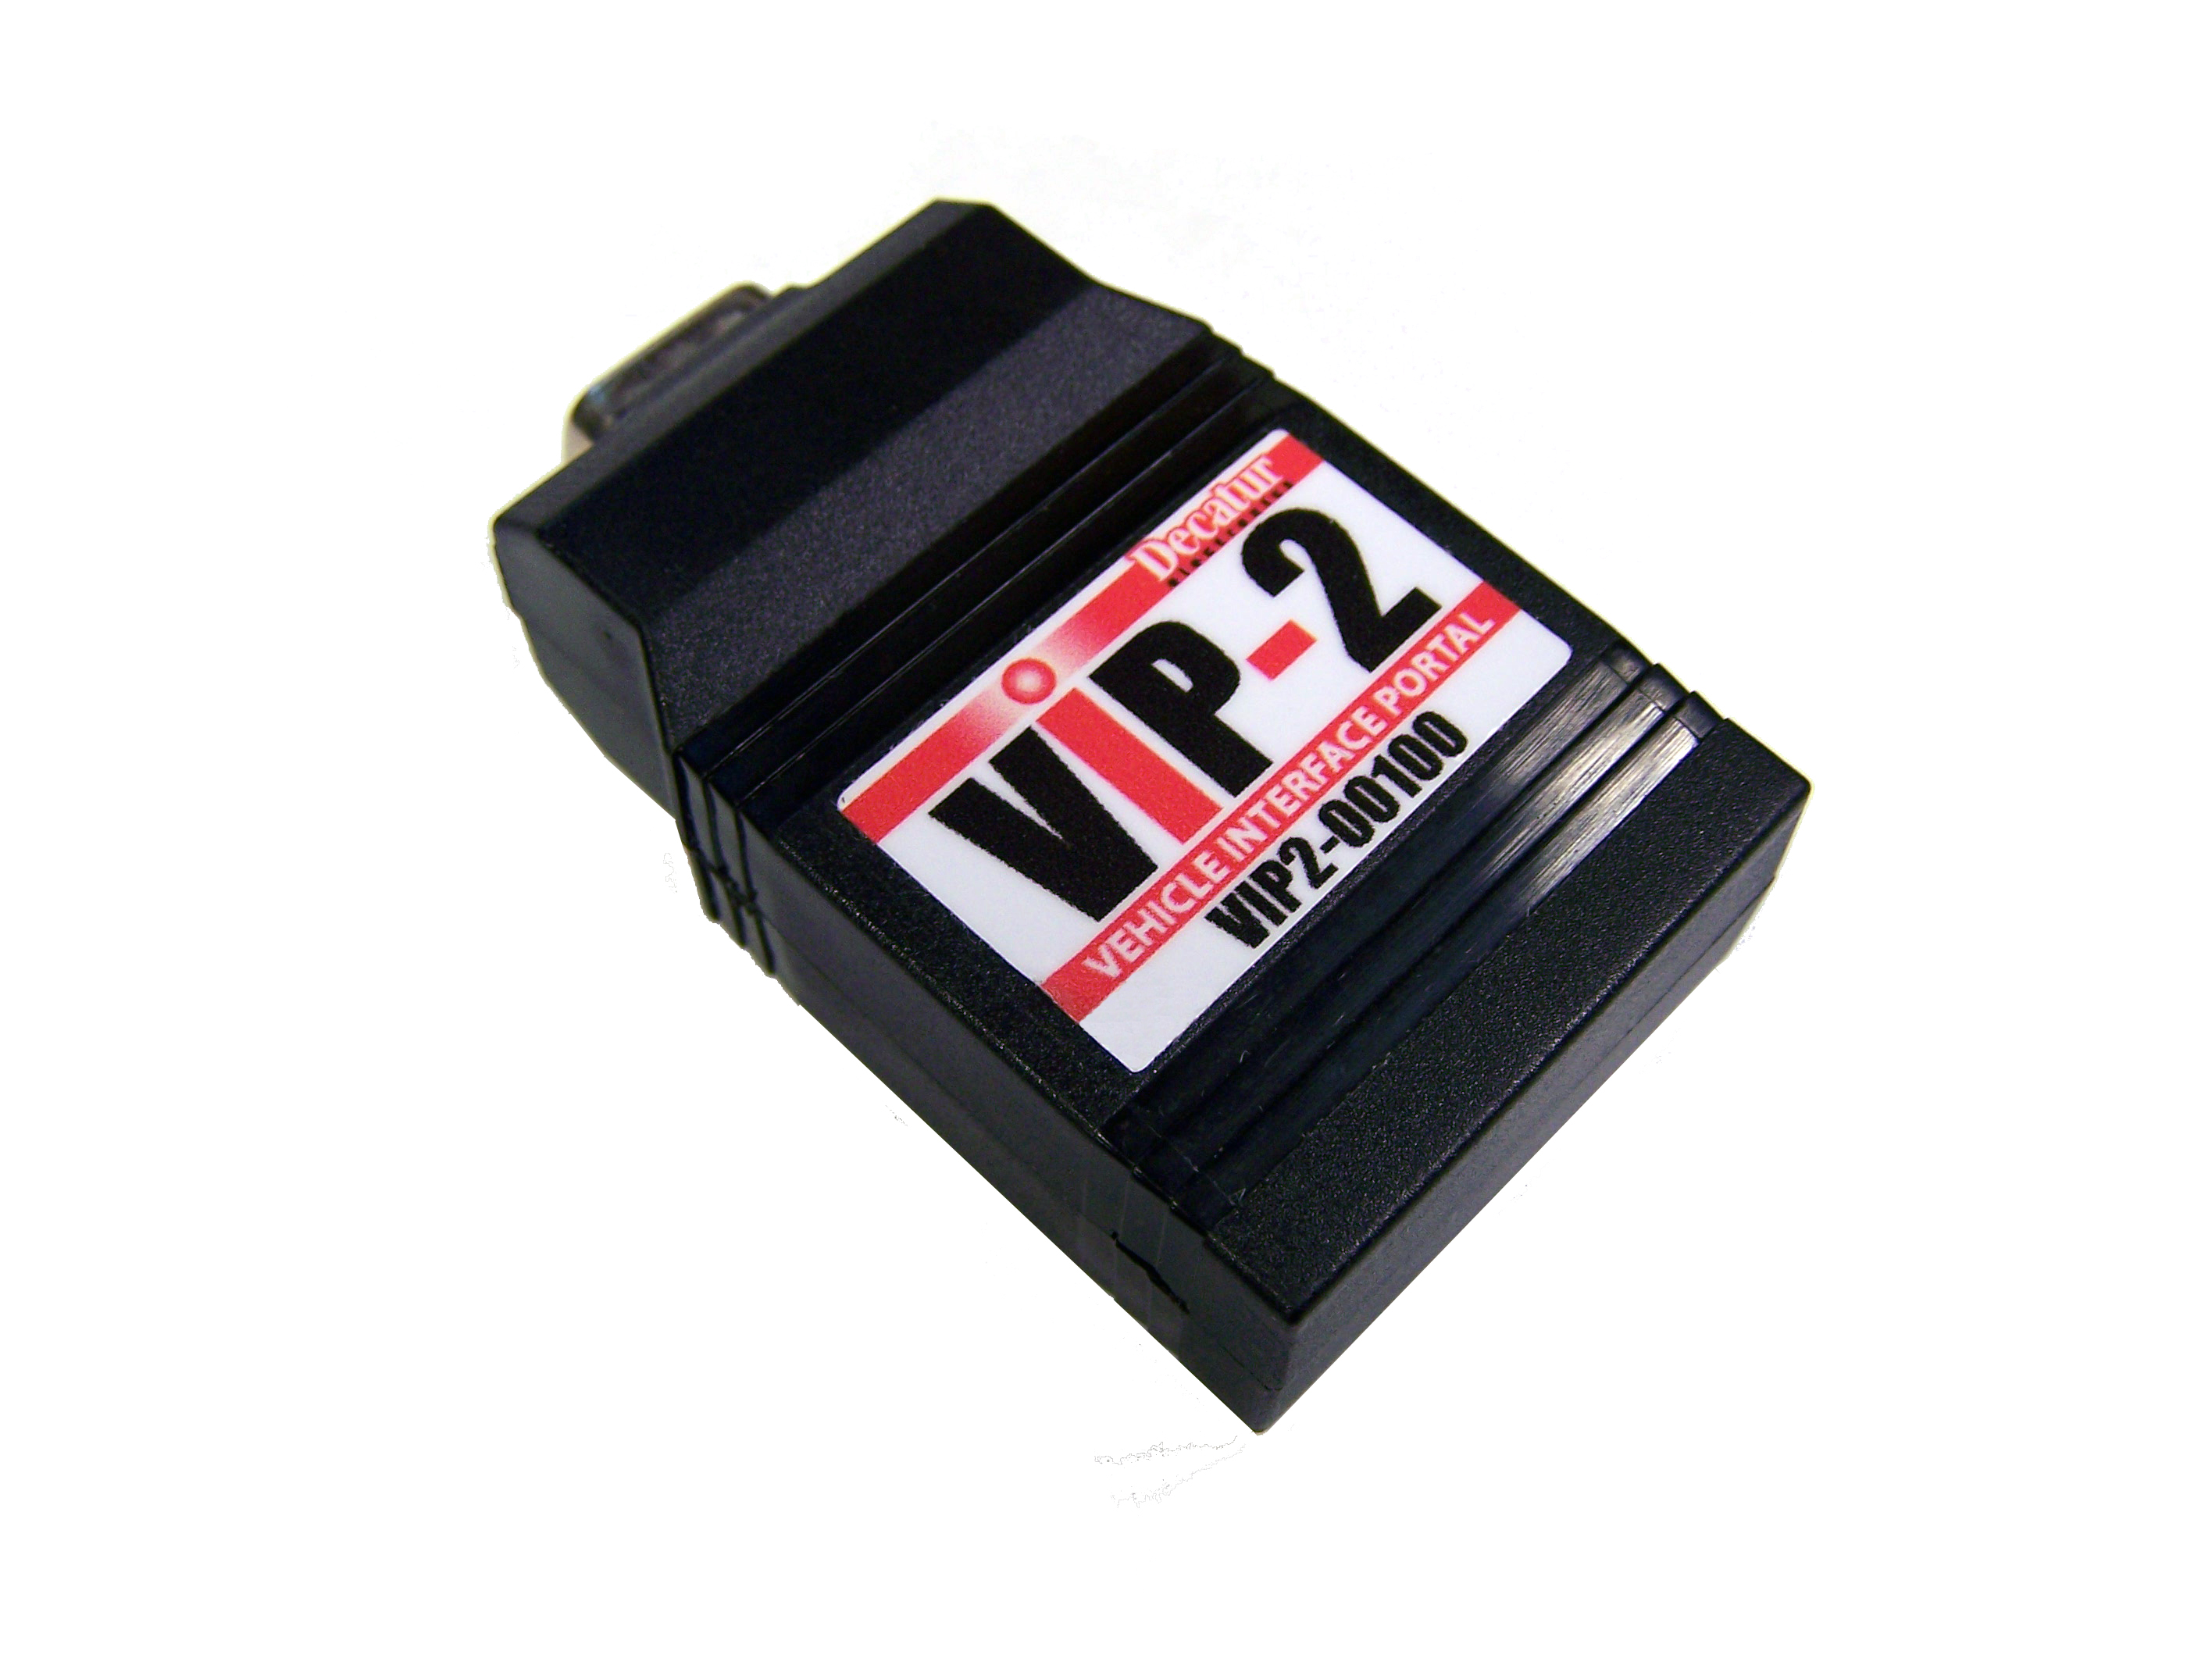 VIP-2 (The Vehicle Interface Portal)